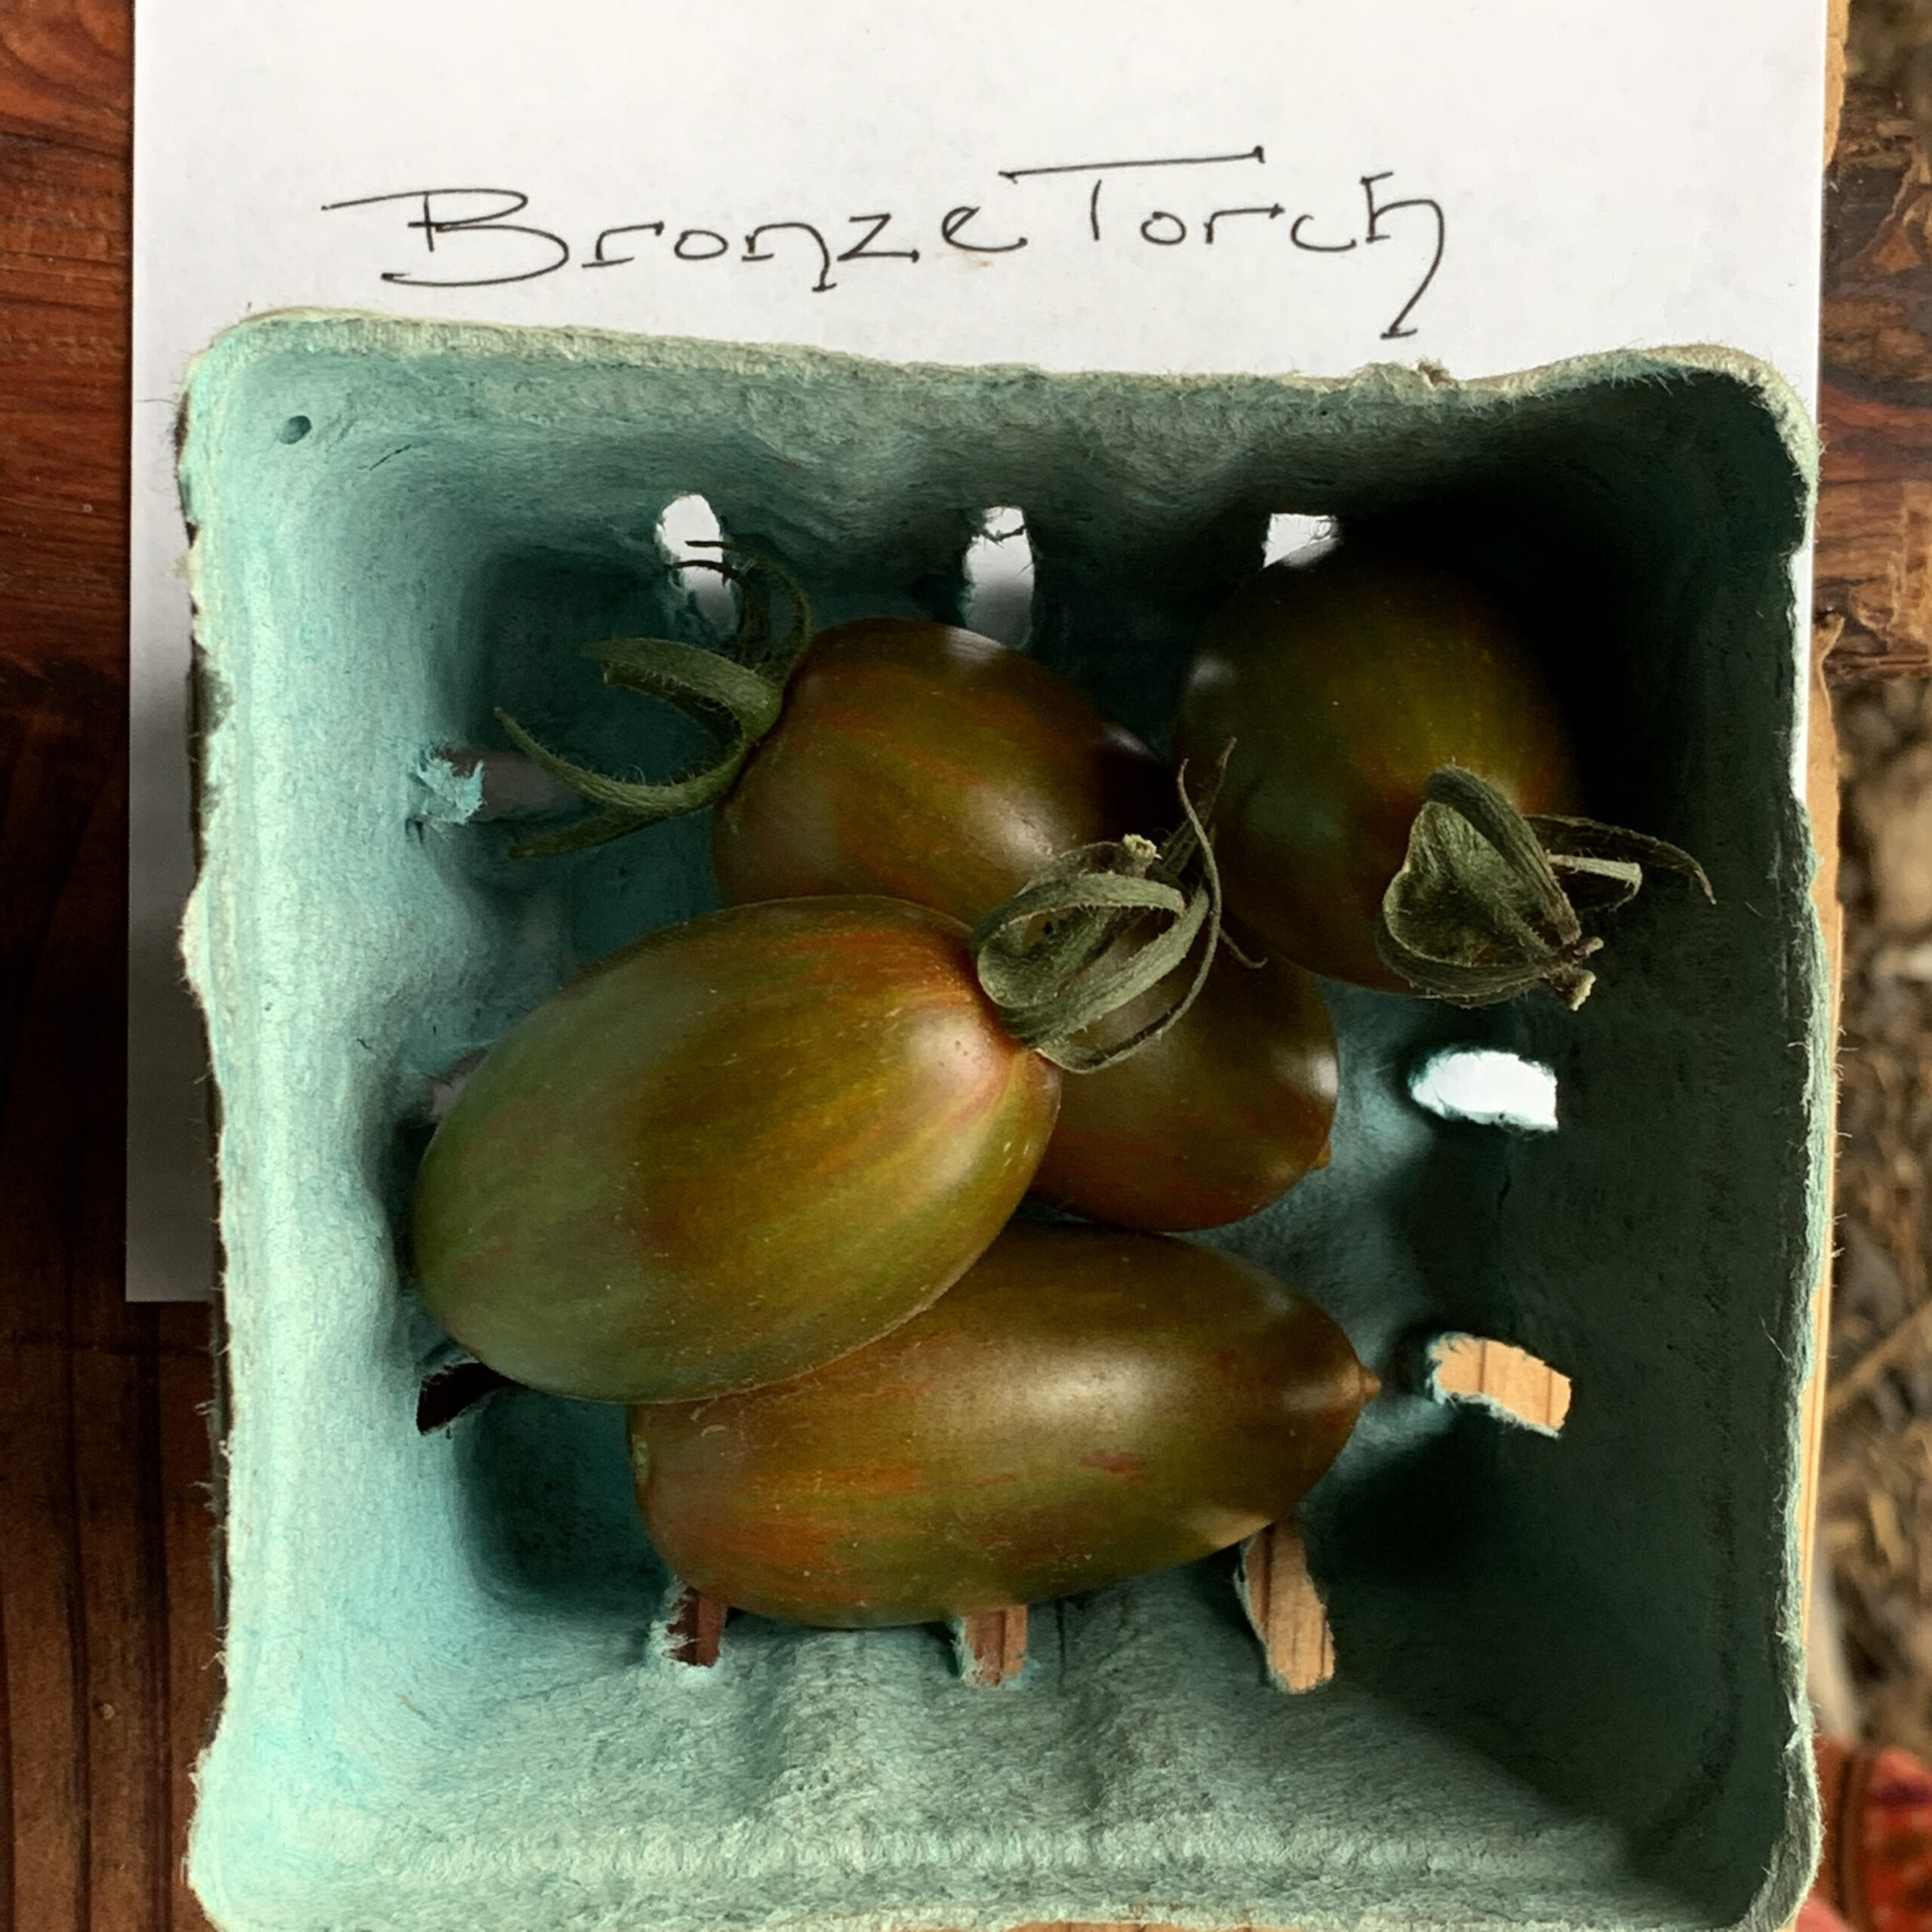 Image of Bronze Torch tomatoes